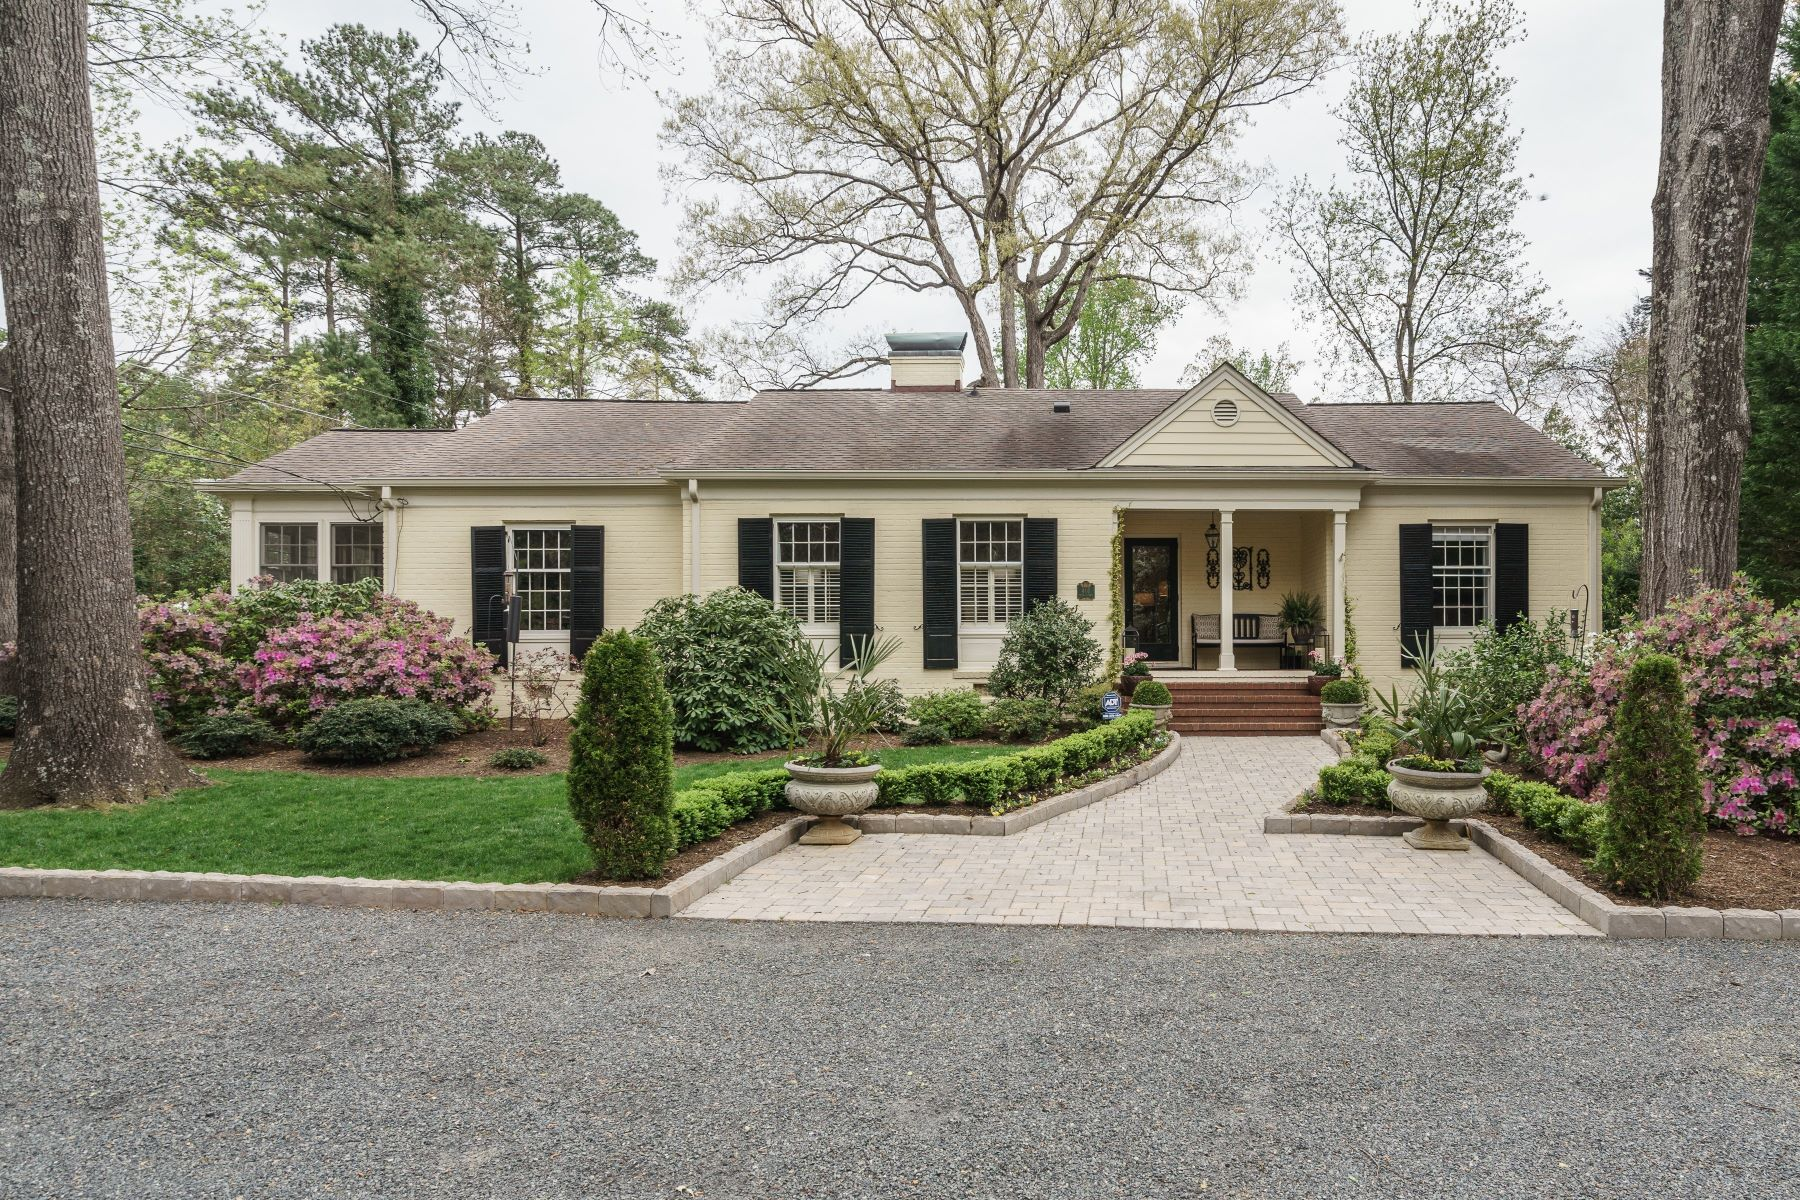 Single Family Home for Sale at Country Club Hills 401 Transylvania Avenue Raleigh, North Carolina, 27609 United StatesIn/Around: Cary, Chapel Hill, Durham